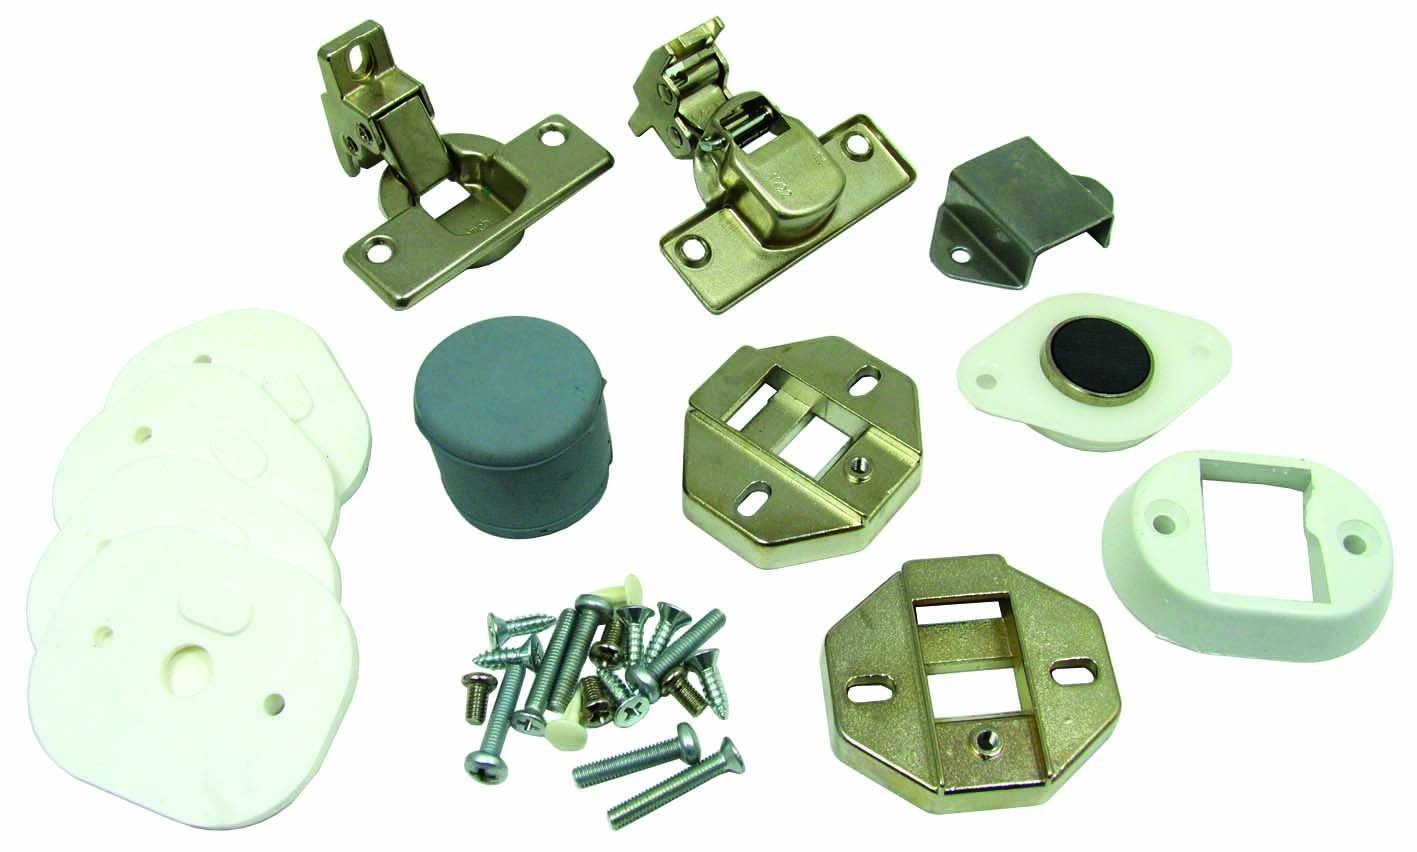 Hotpoint BHWM129UK/1 BHWM149UKE Washing Machine Cupboard Hotpoint Door Decor Hinge Installation Kit